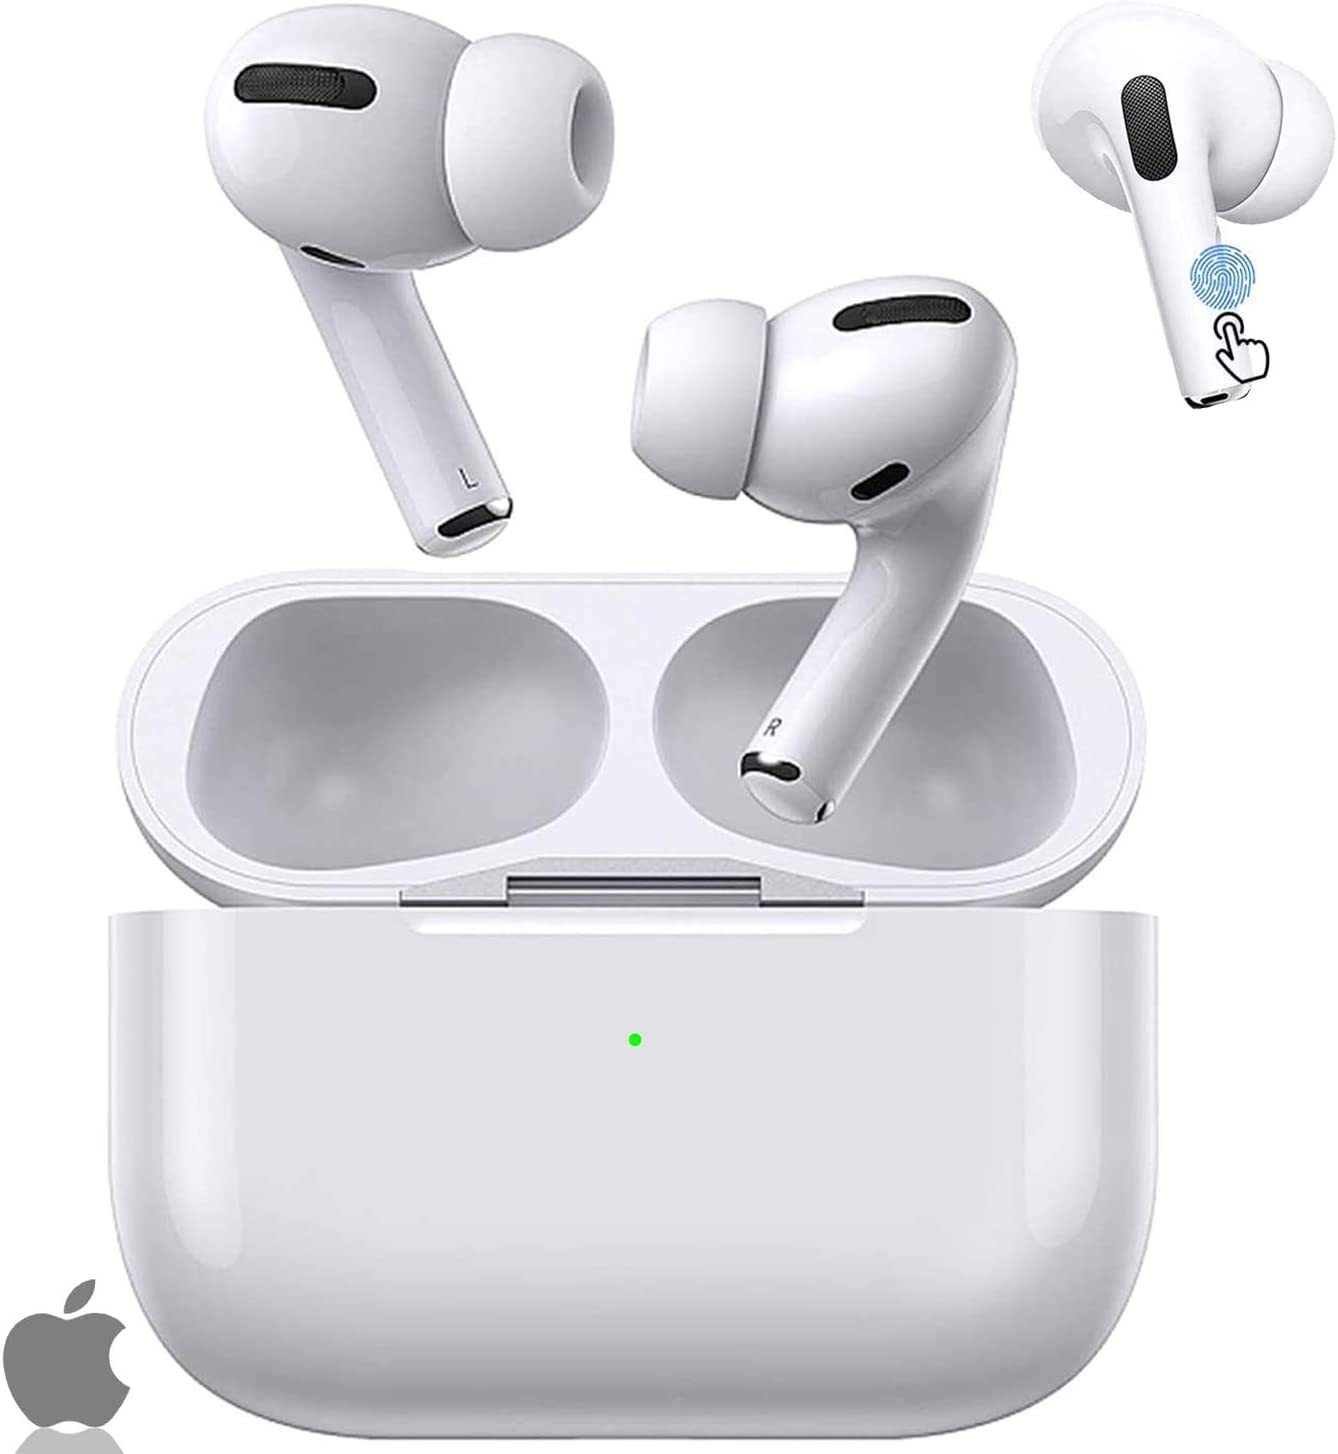 Wireless Earbuds, Bluetooth 5.0 Headphone, with 24h Charge Case, Touch Control, IPX5 Waterproof, 3D Stereo Sound, Noise Canceling, Pop-up Pairing Compatible with Apple/Airpods Pro/iPhone/Android